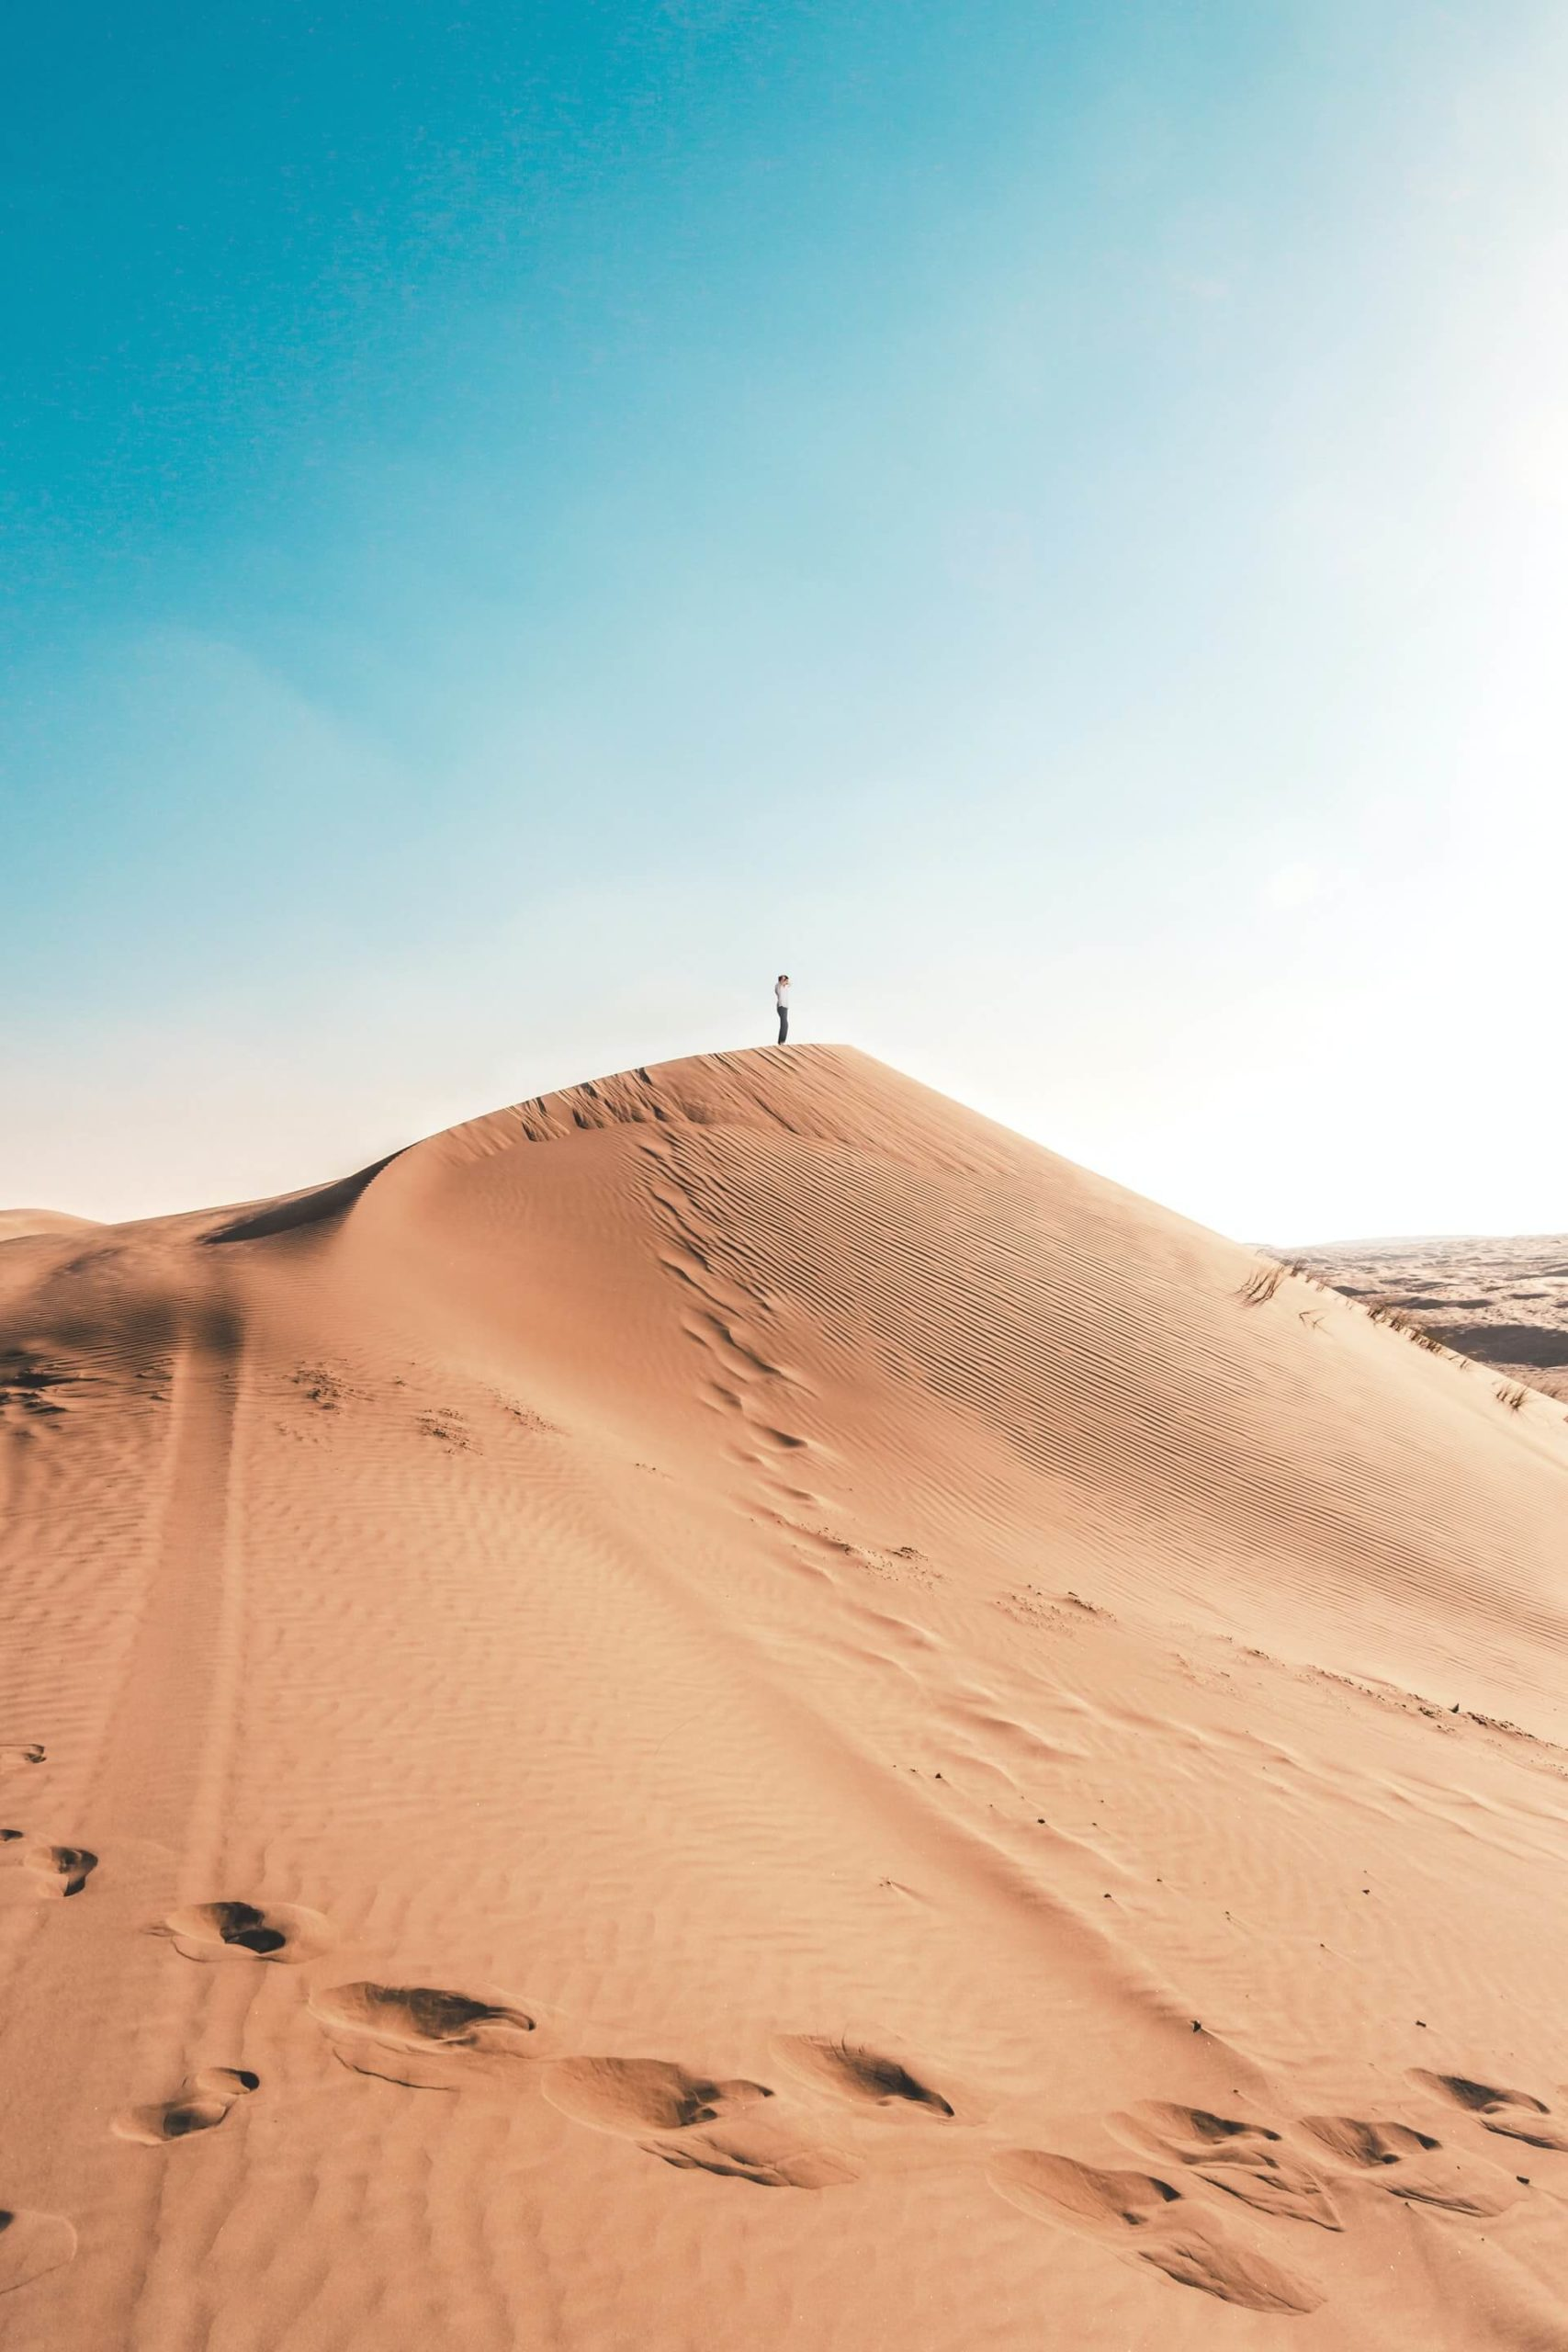 A backpacker in Oman summits a dune in the Sharqiyah Sands